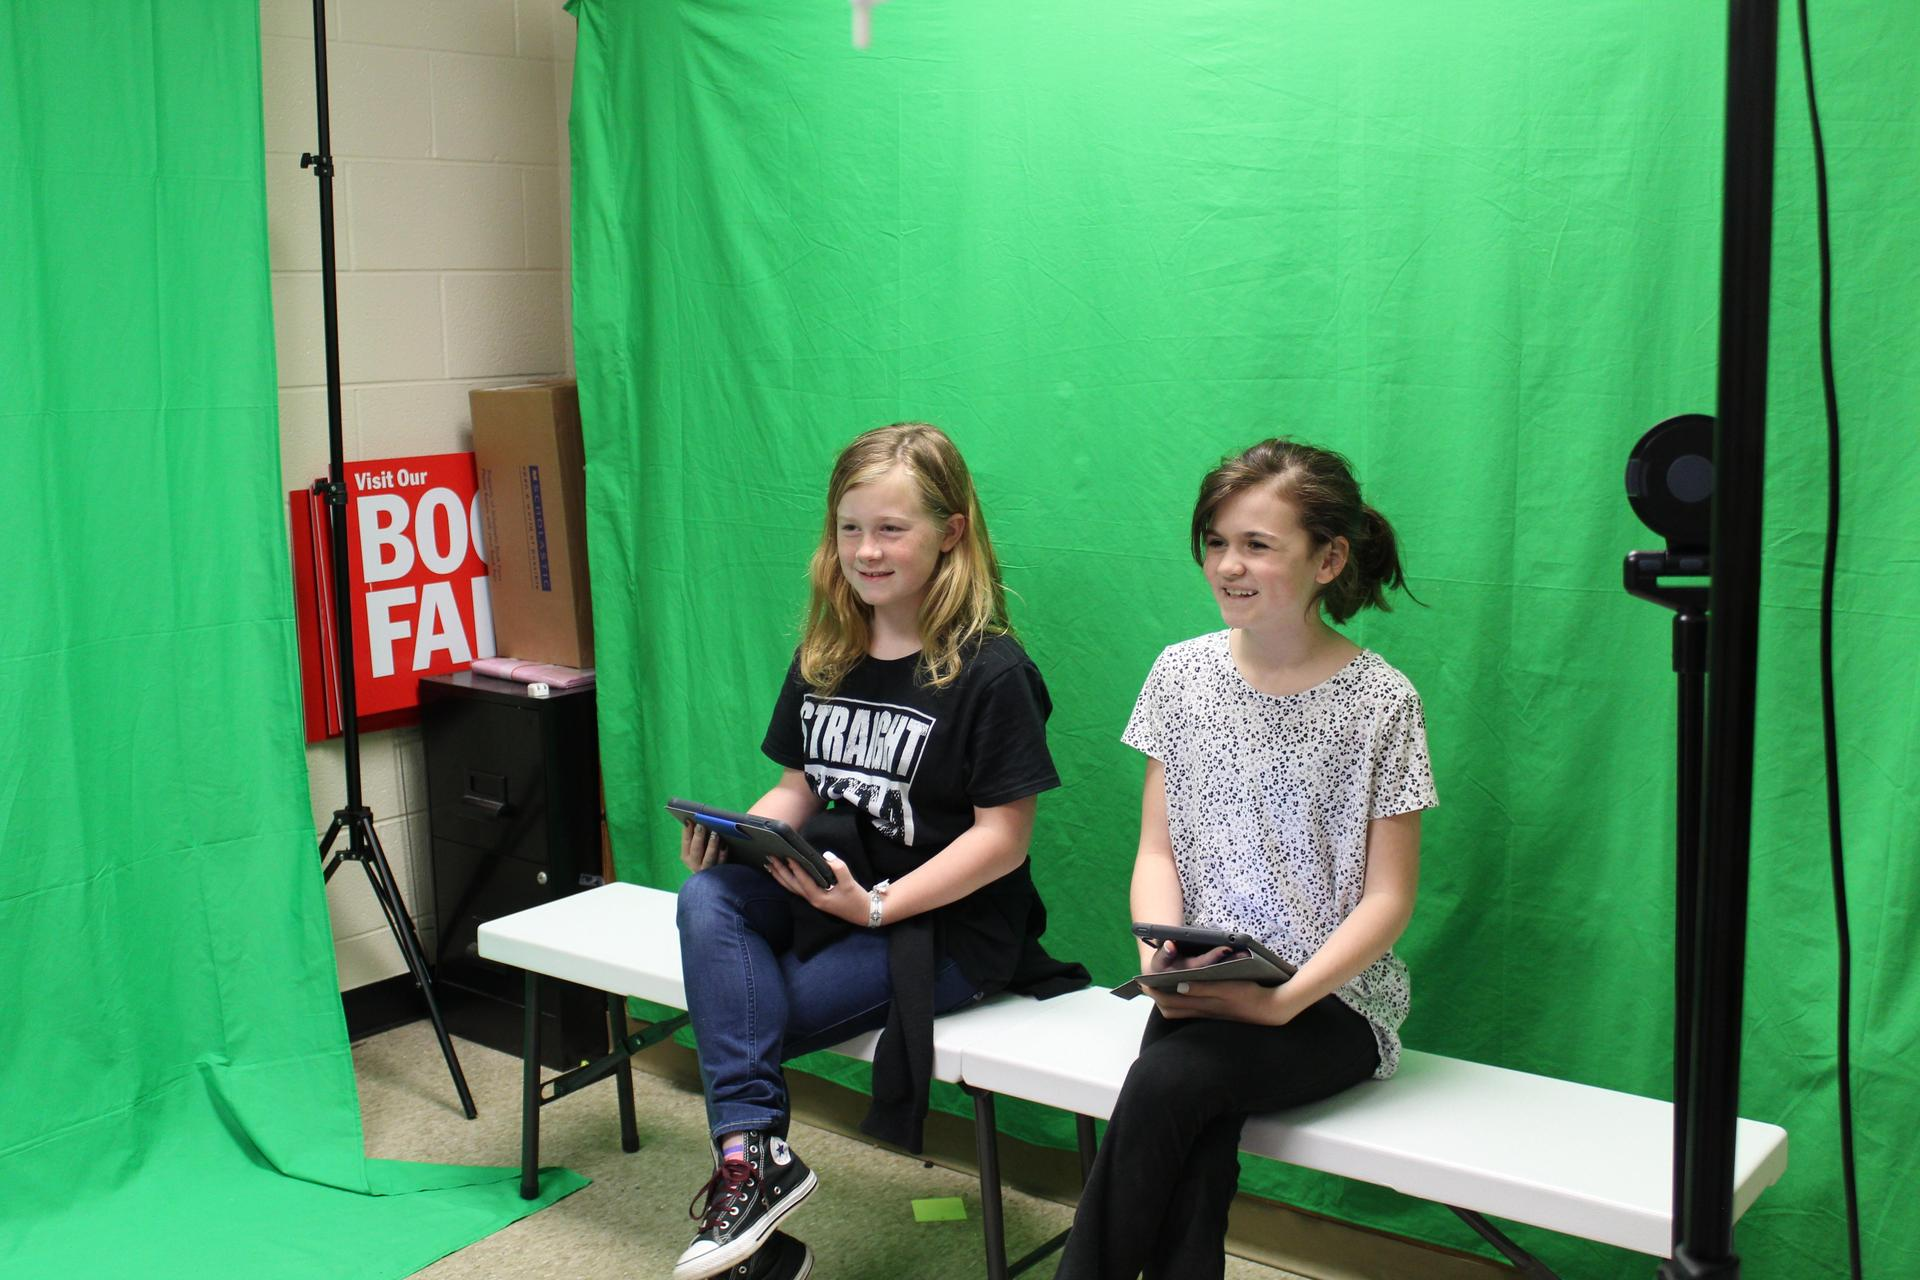 Image of Morning Announcements Crew in Action